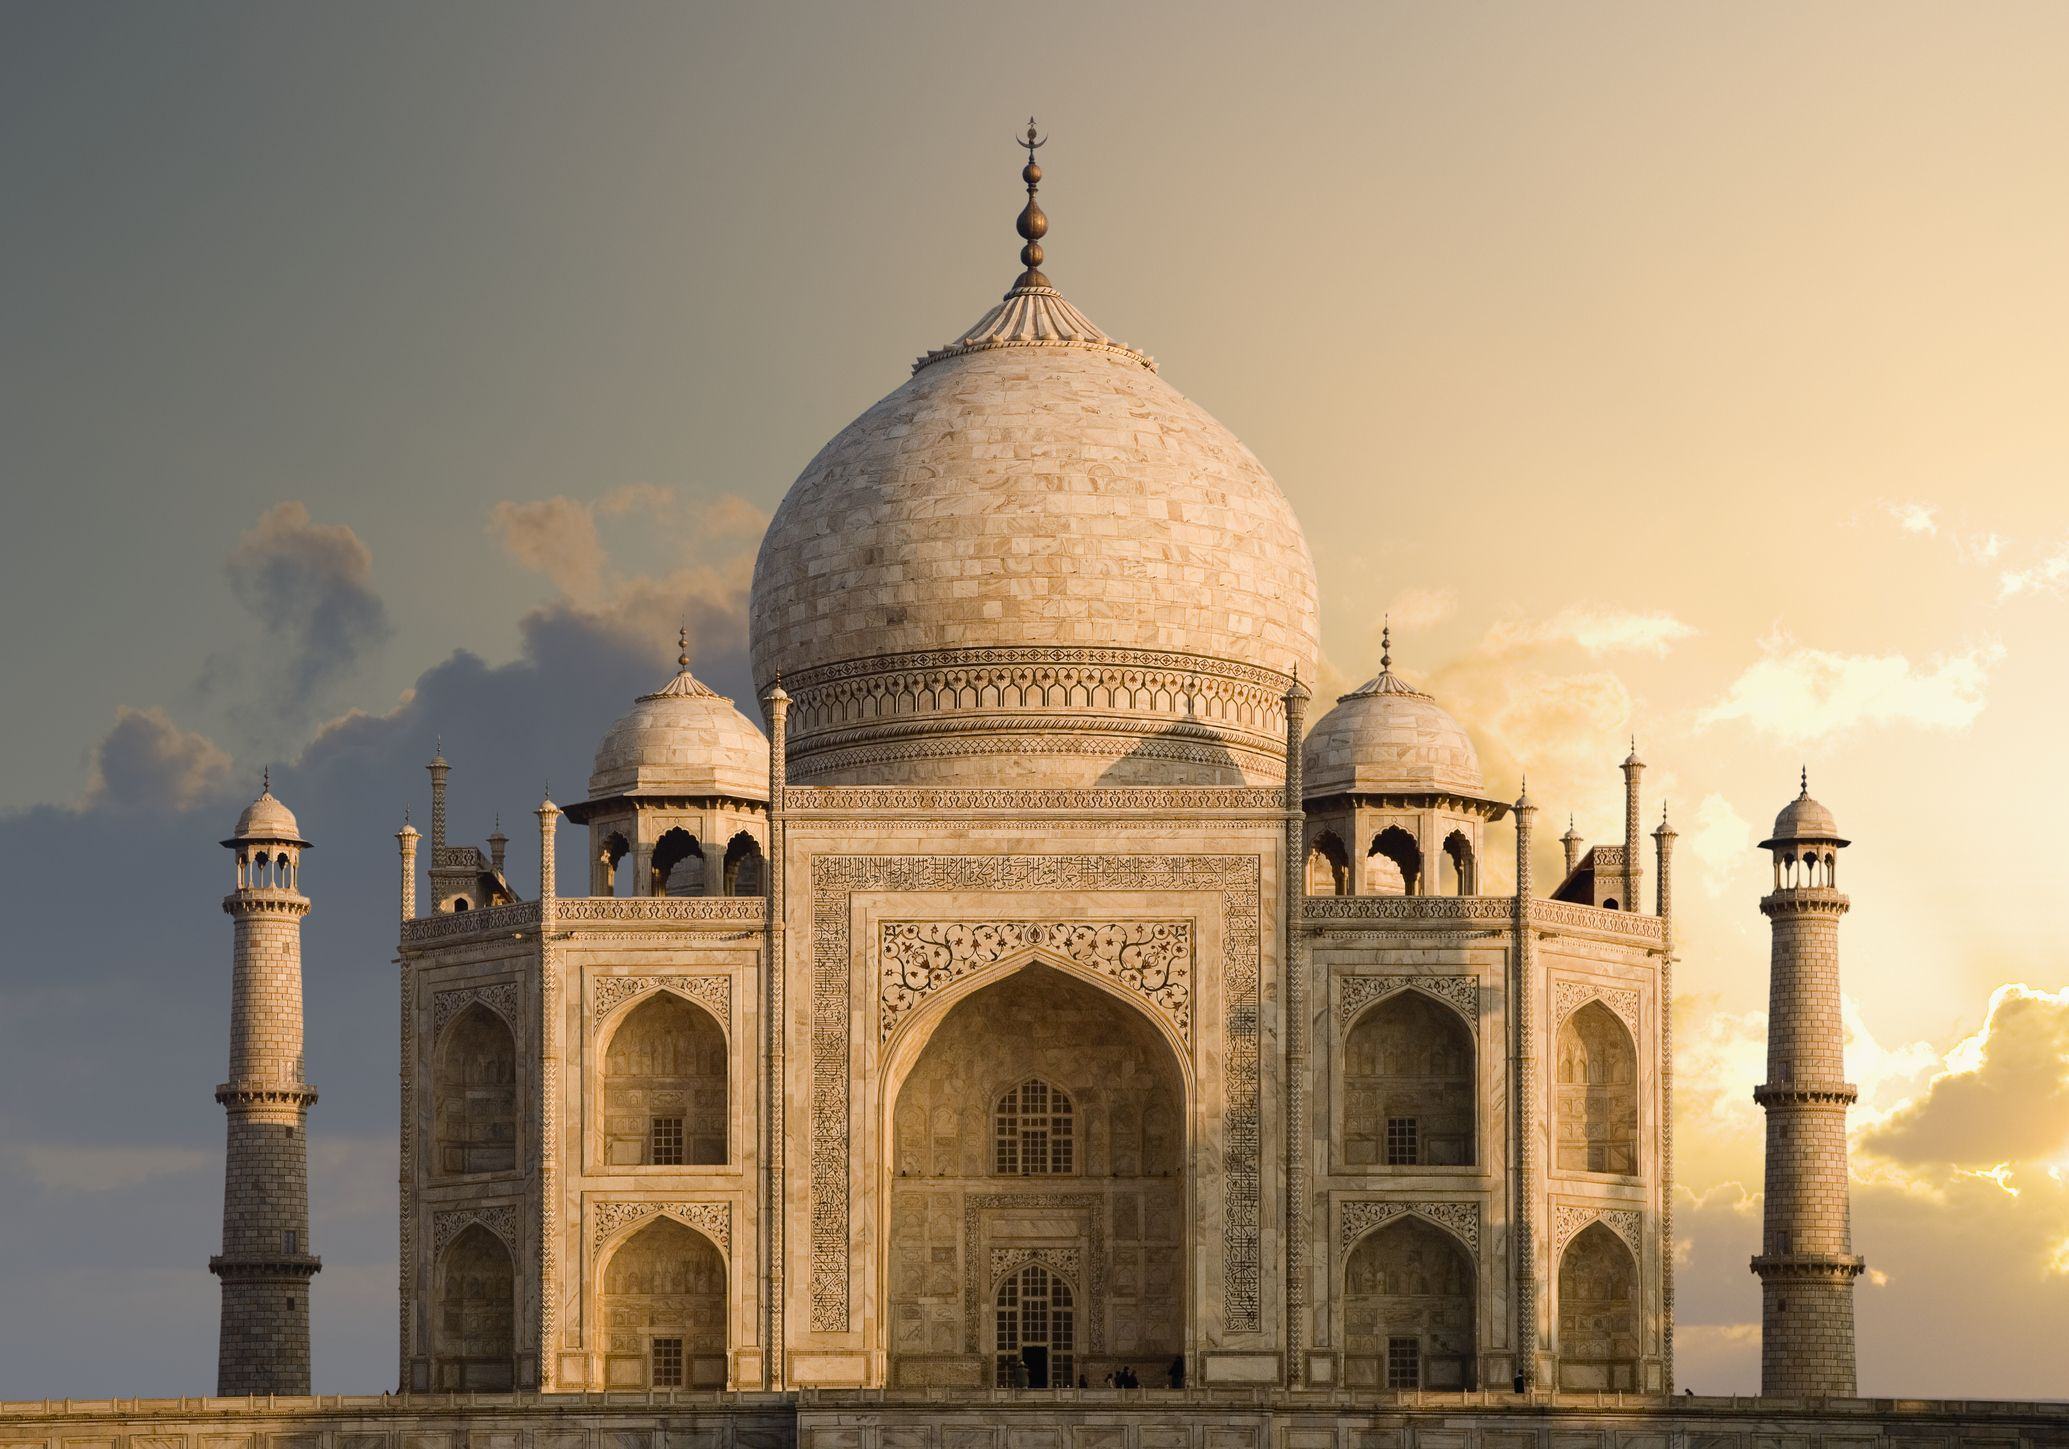 Sunrise Taj Mahal Tour From Delhi by Car